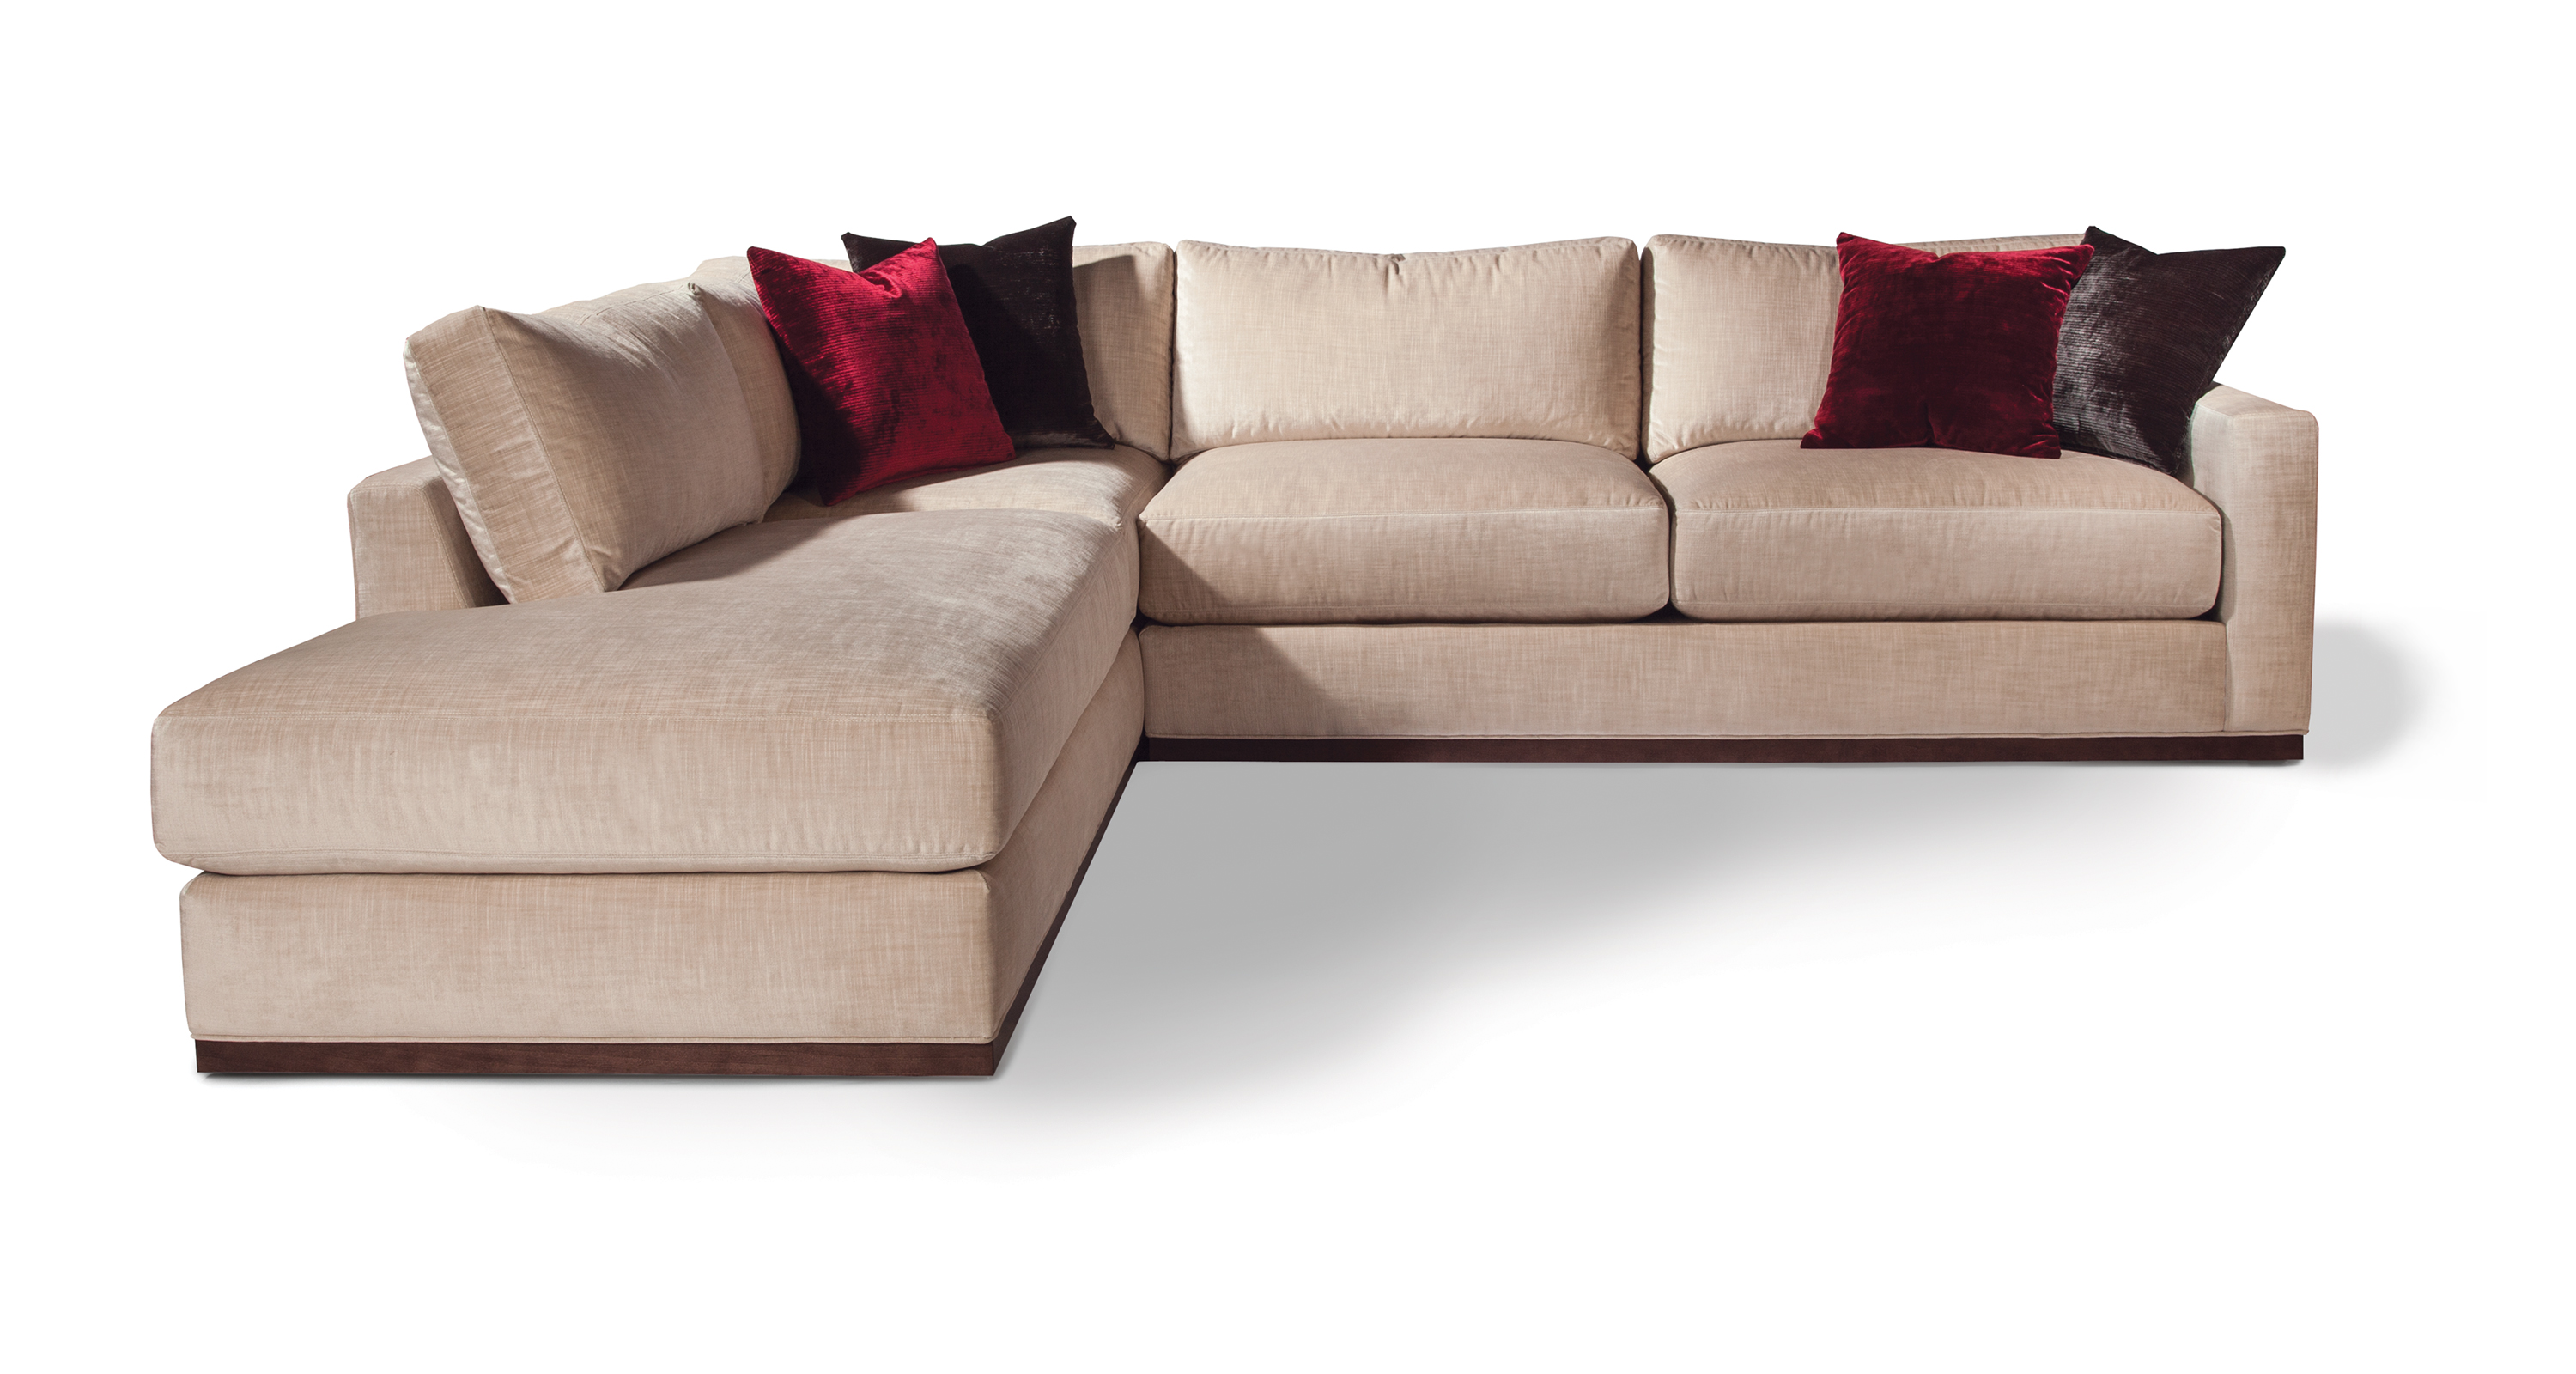 Two Big Sectional